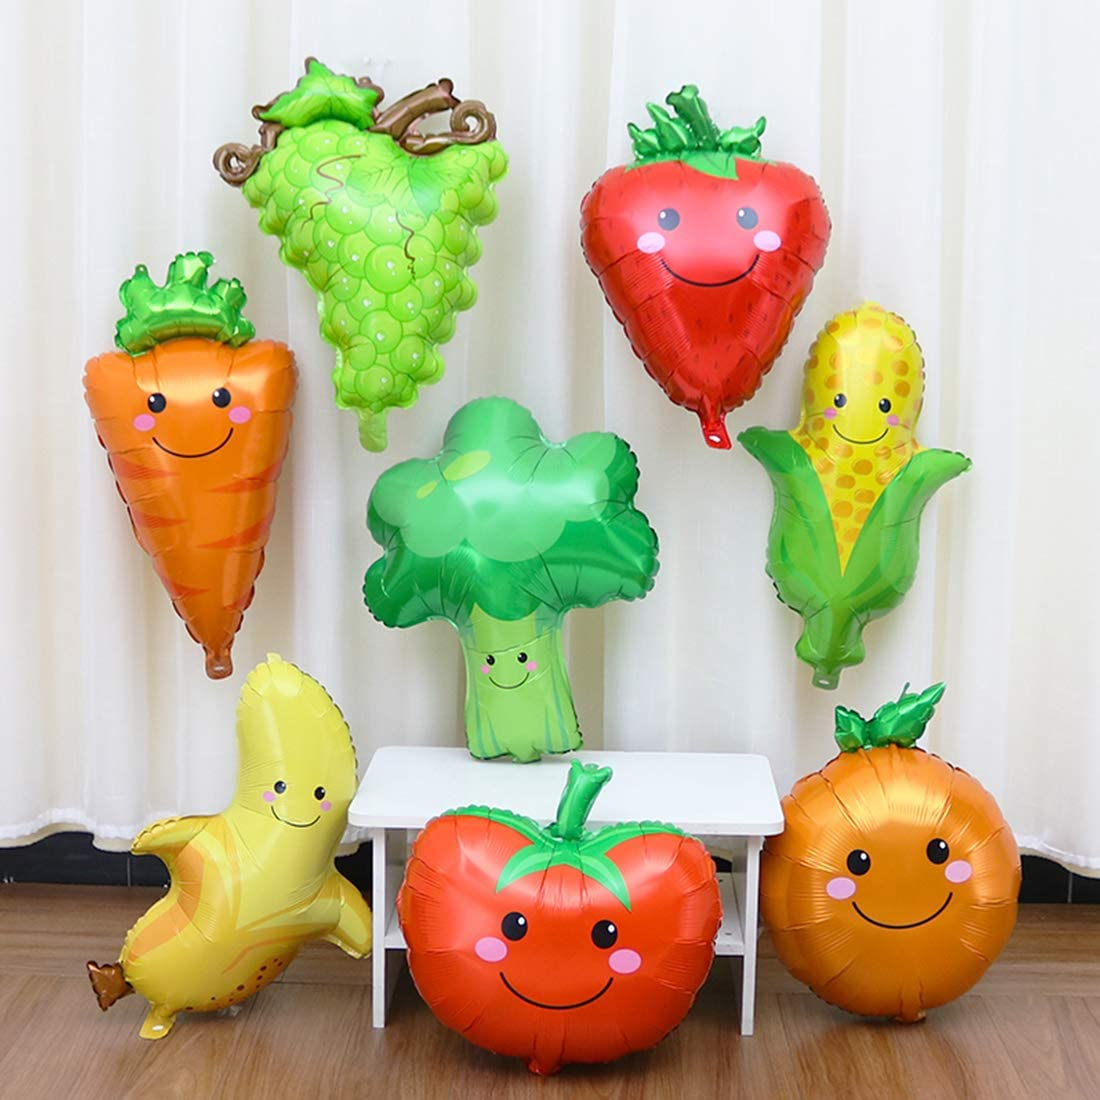 GIHOO 8pcs Fruit & Vegetable Aluminum foil Balloons for Party Decoration Fruit Birthday Aluminum Foil Helium Balloon for Summer Party Wedding Birthday Baby Shower Party Supplies